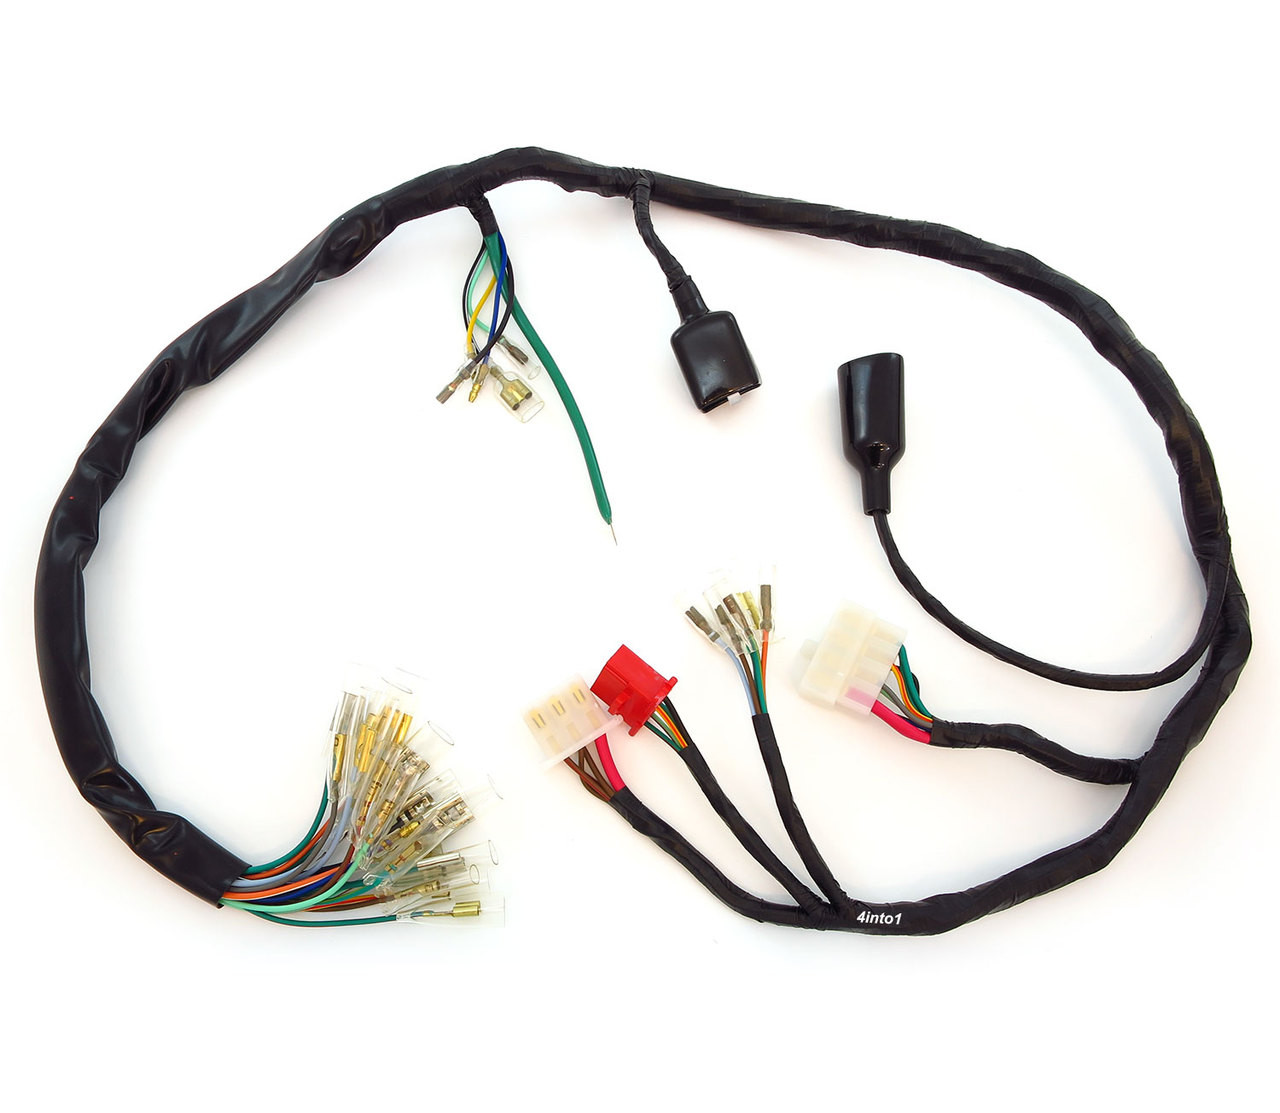 hight resolution of main wiring harness 32100 374 000 honda cb550k 1974 1975 image 1